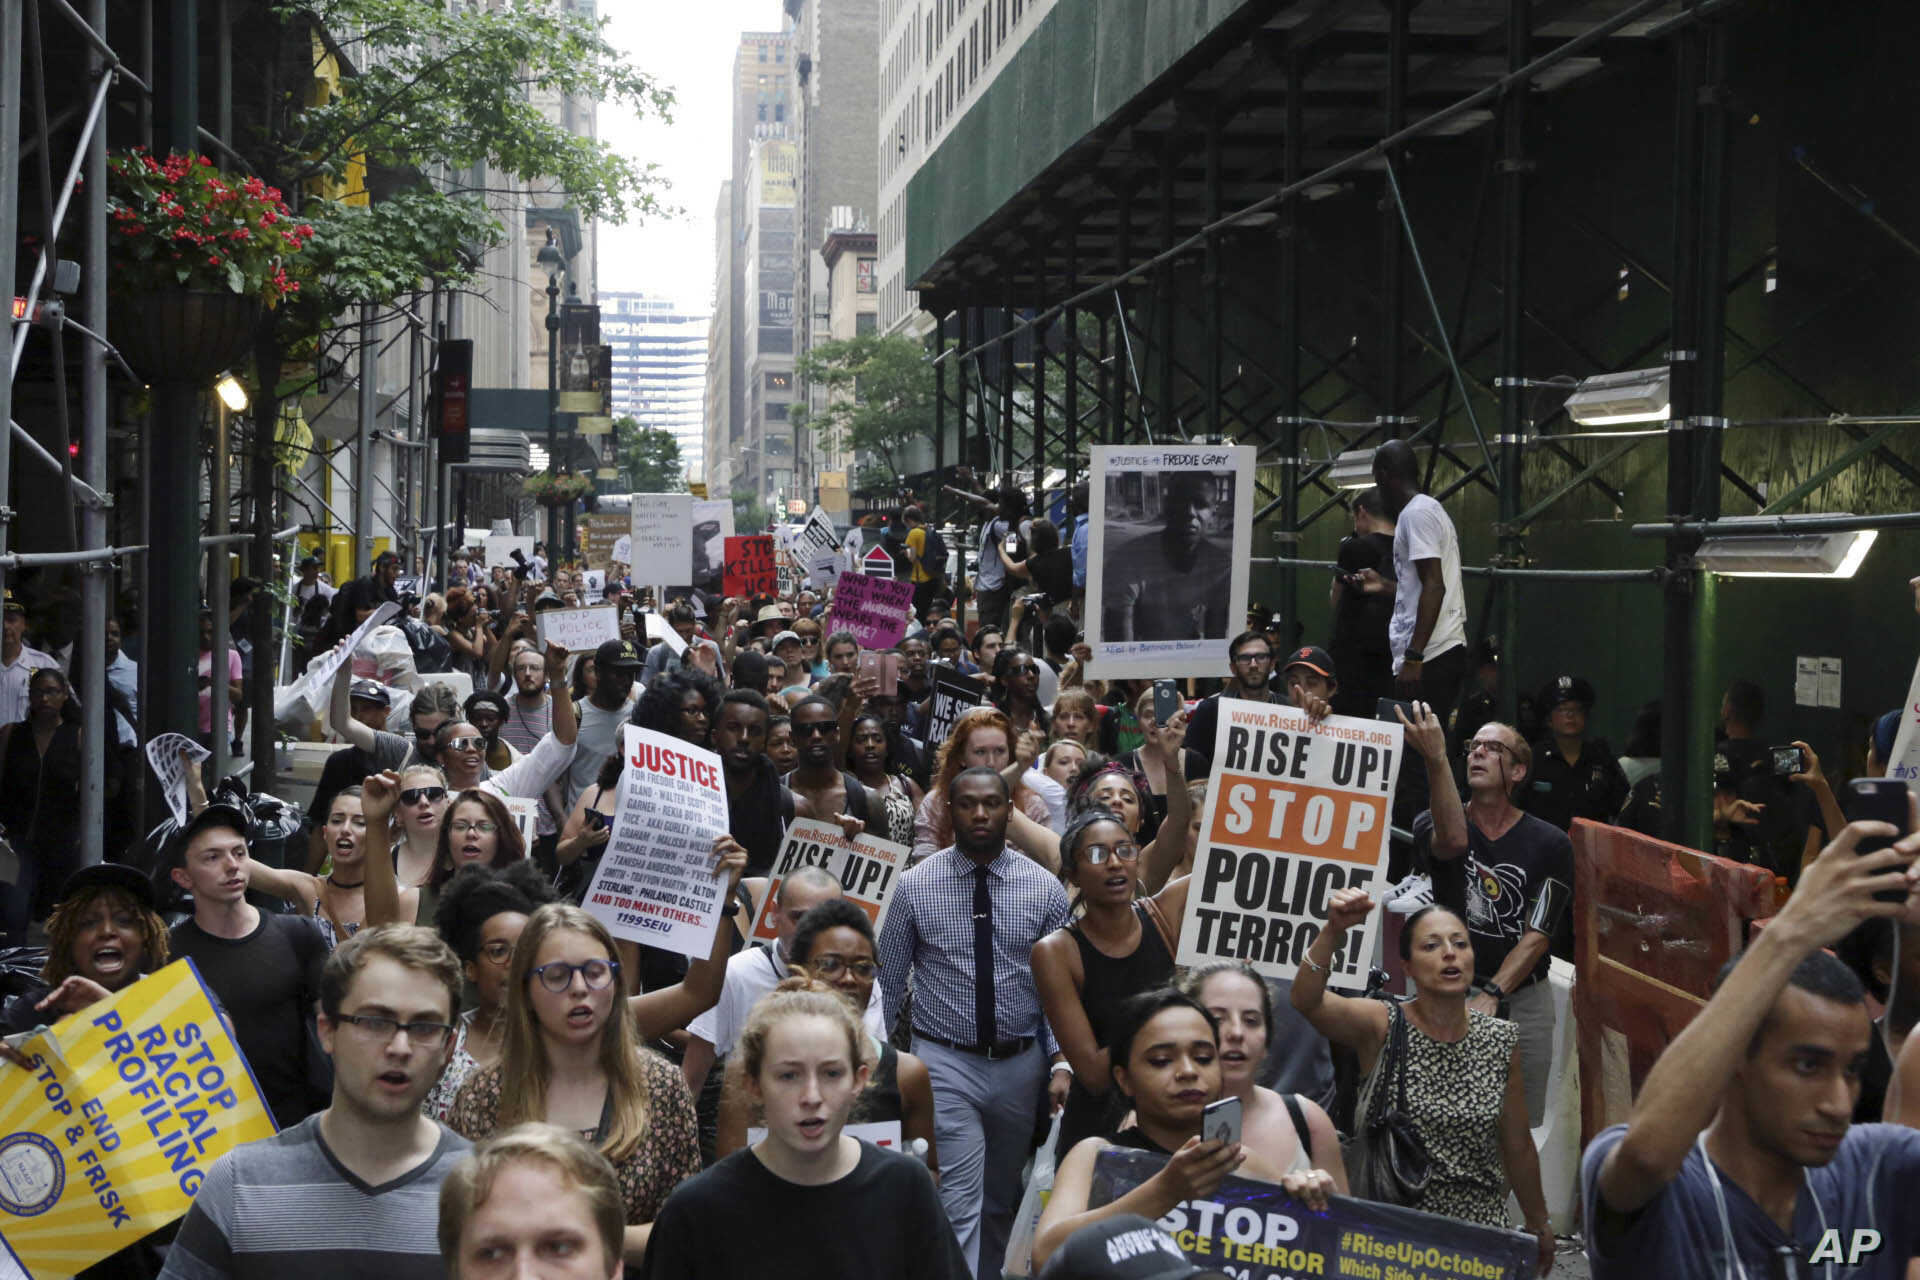 Protesters March Against Police-related Shootings in US | Voice of